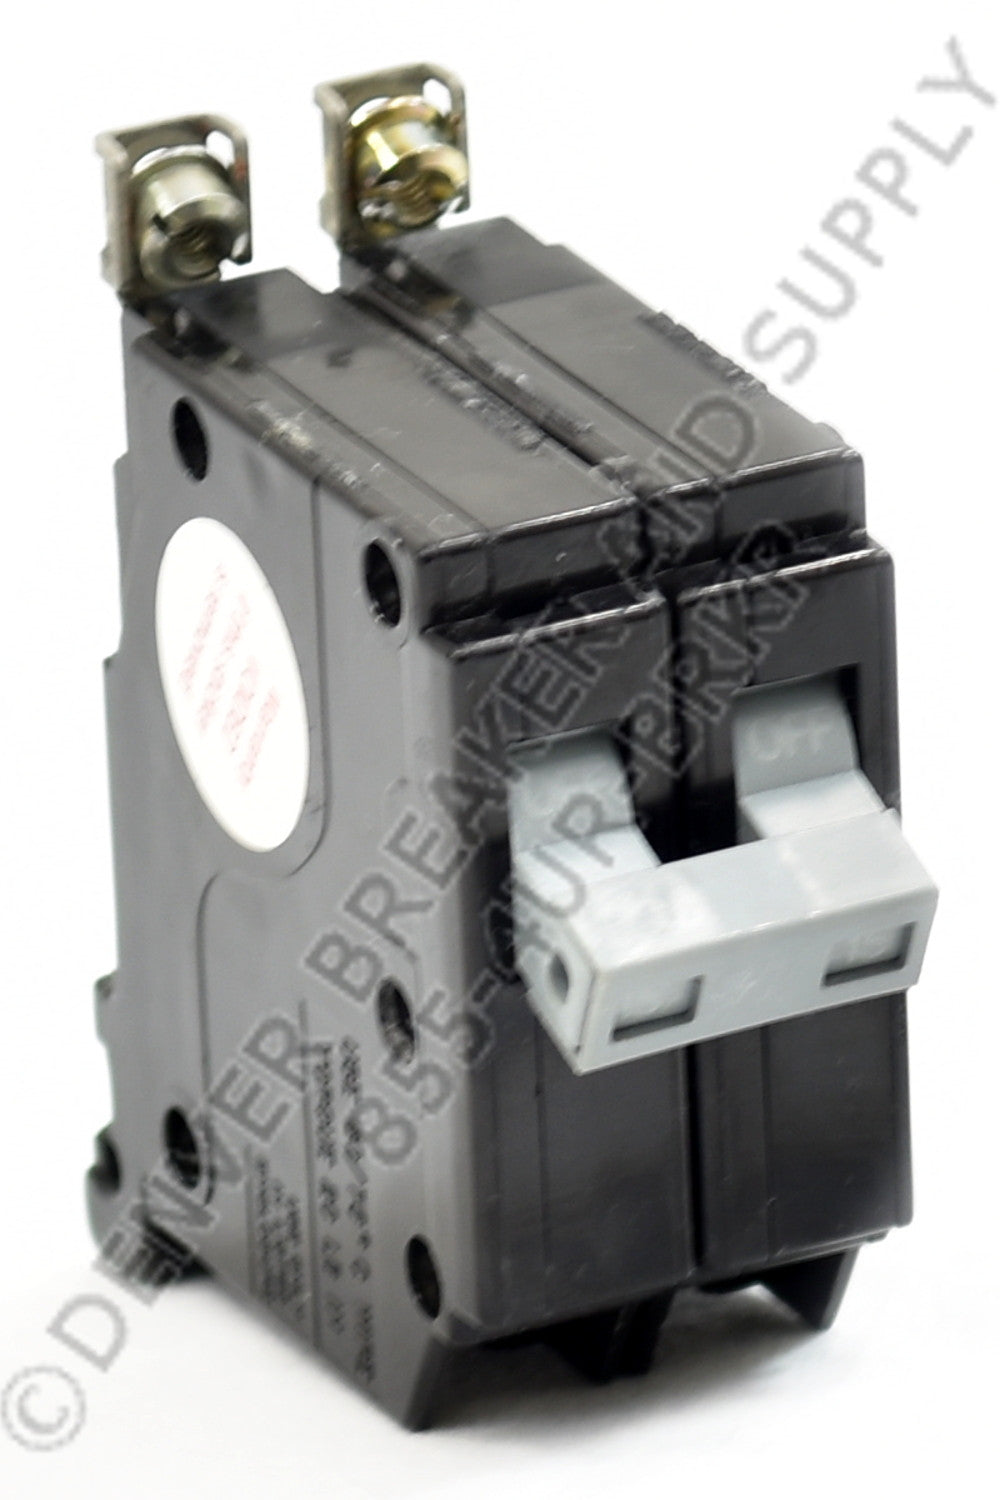 Cutler Hammer CHB2100H2 Circuit Breakers